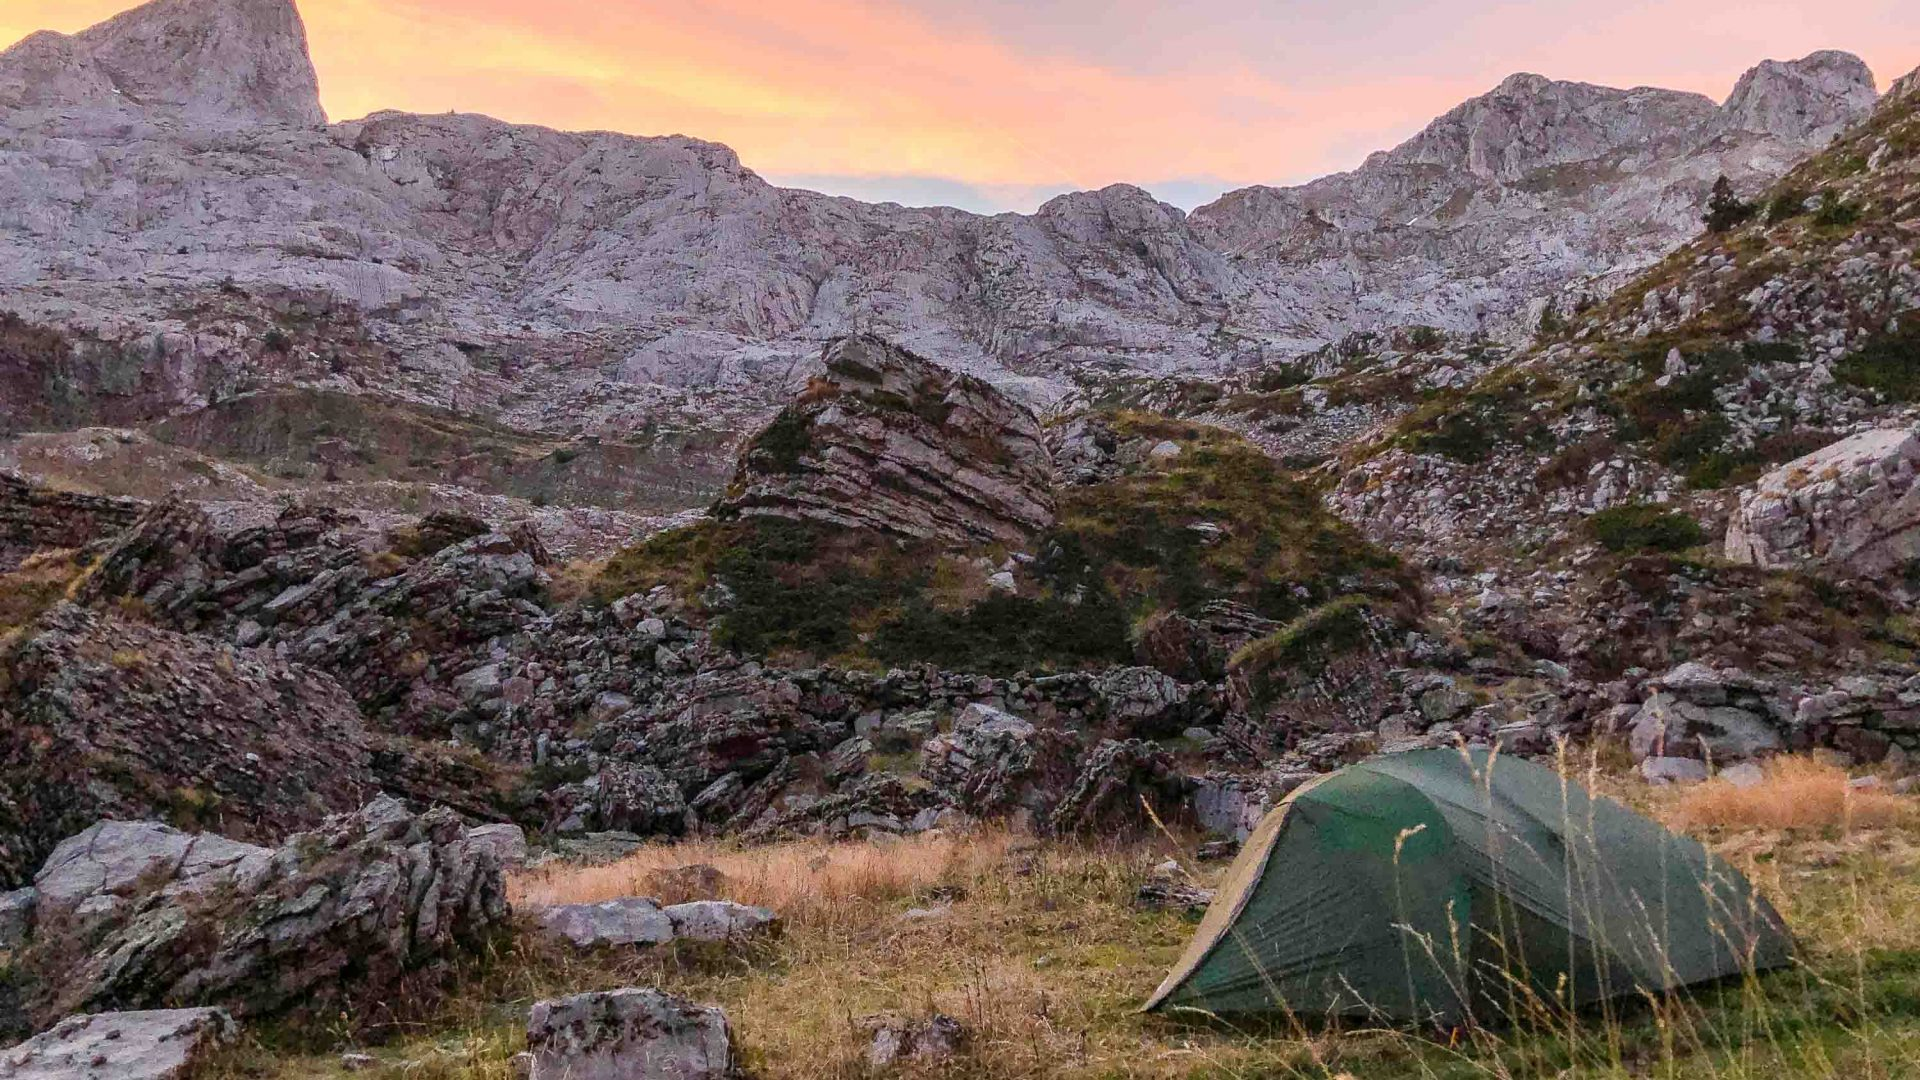 Sunset in the mountains, with Leon's tent nestled peacefully beneath the rocks.